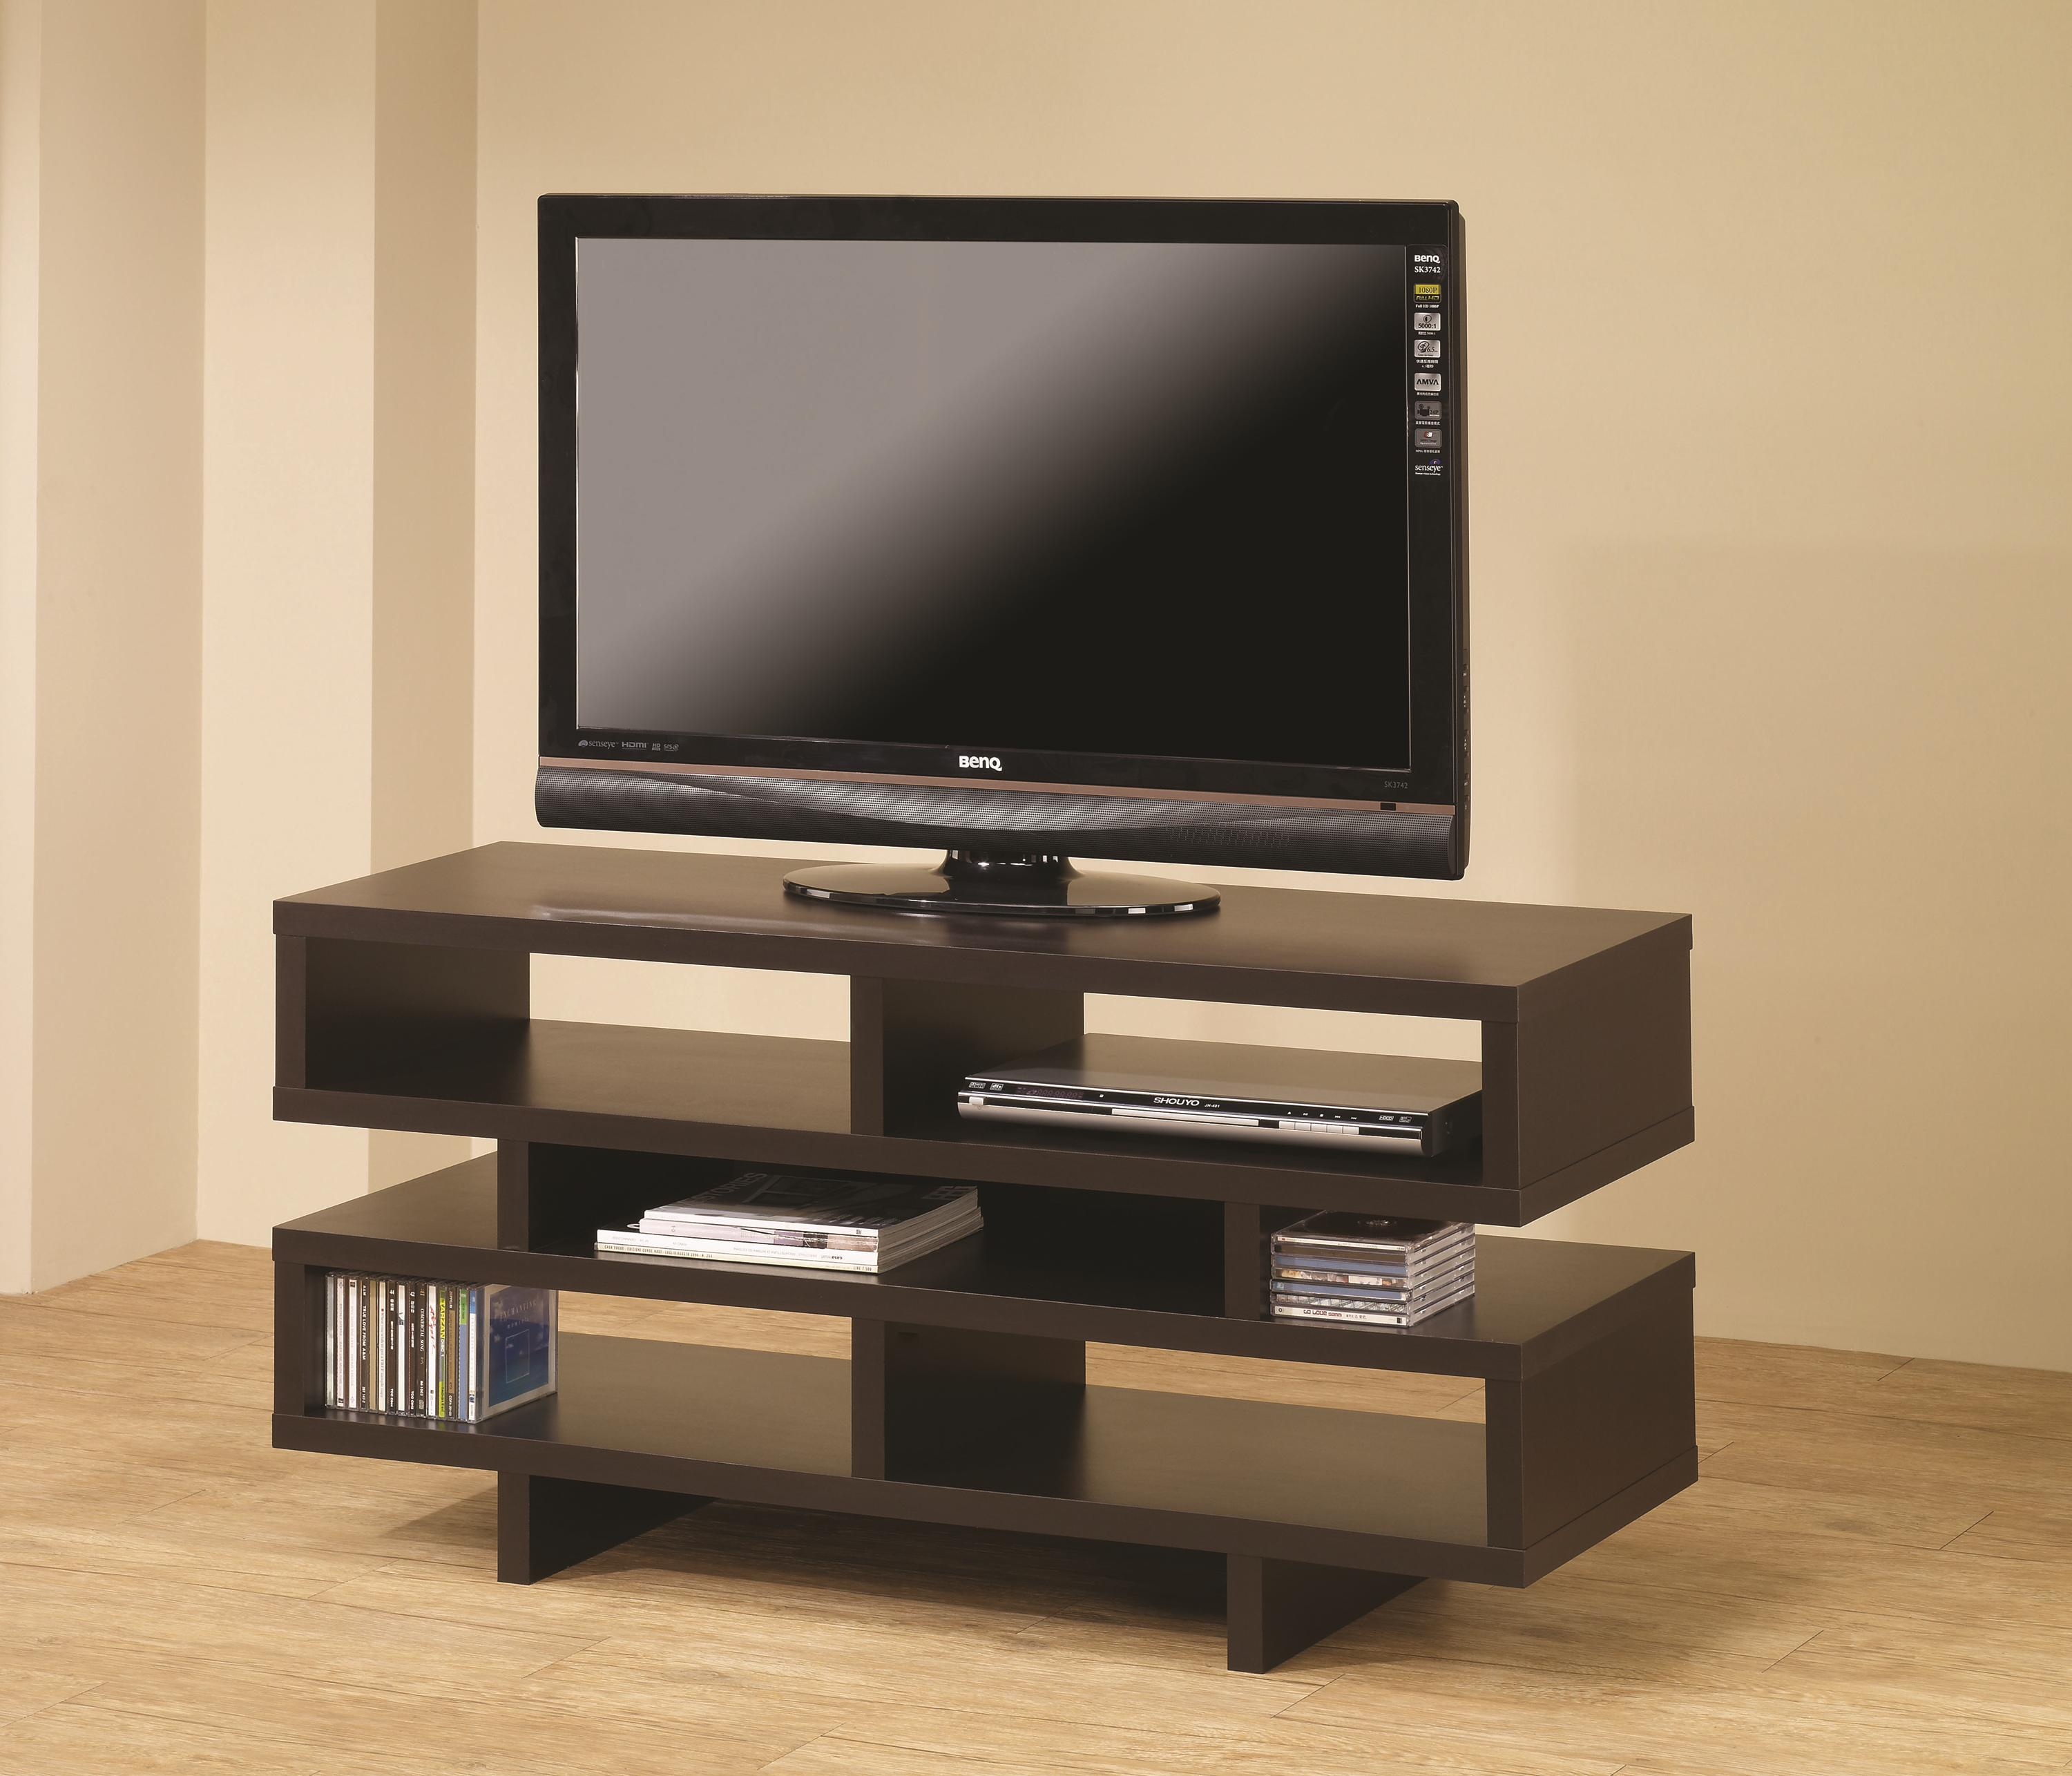 Coaster leo console in two finishes aim rental - Media consoles for small spaces plan ...